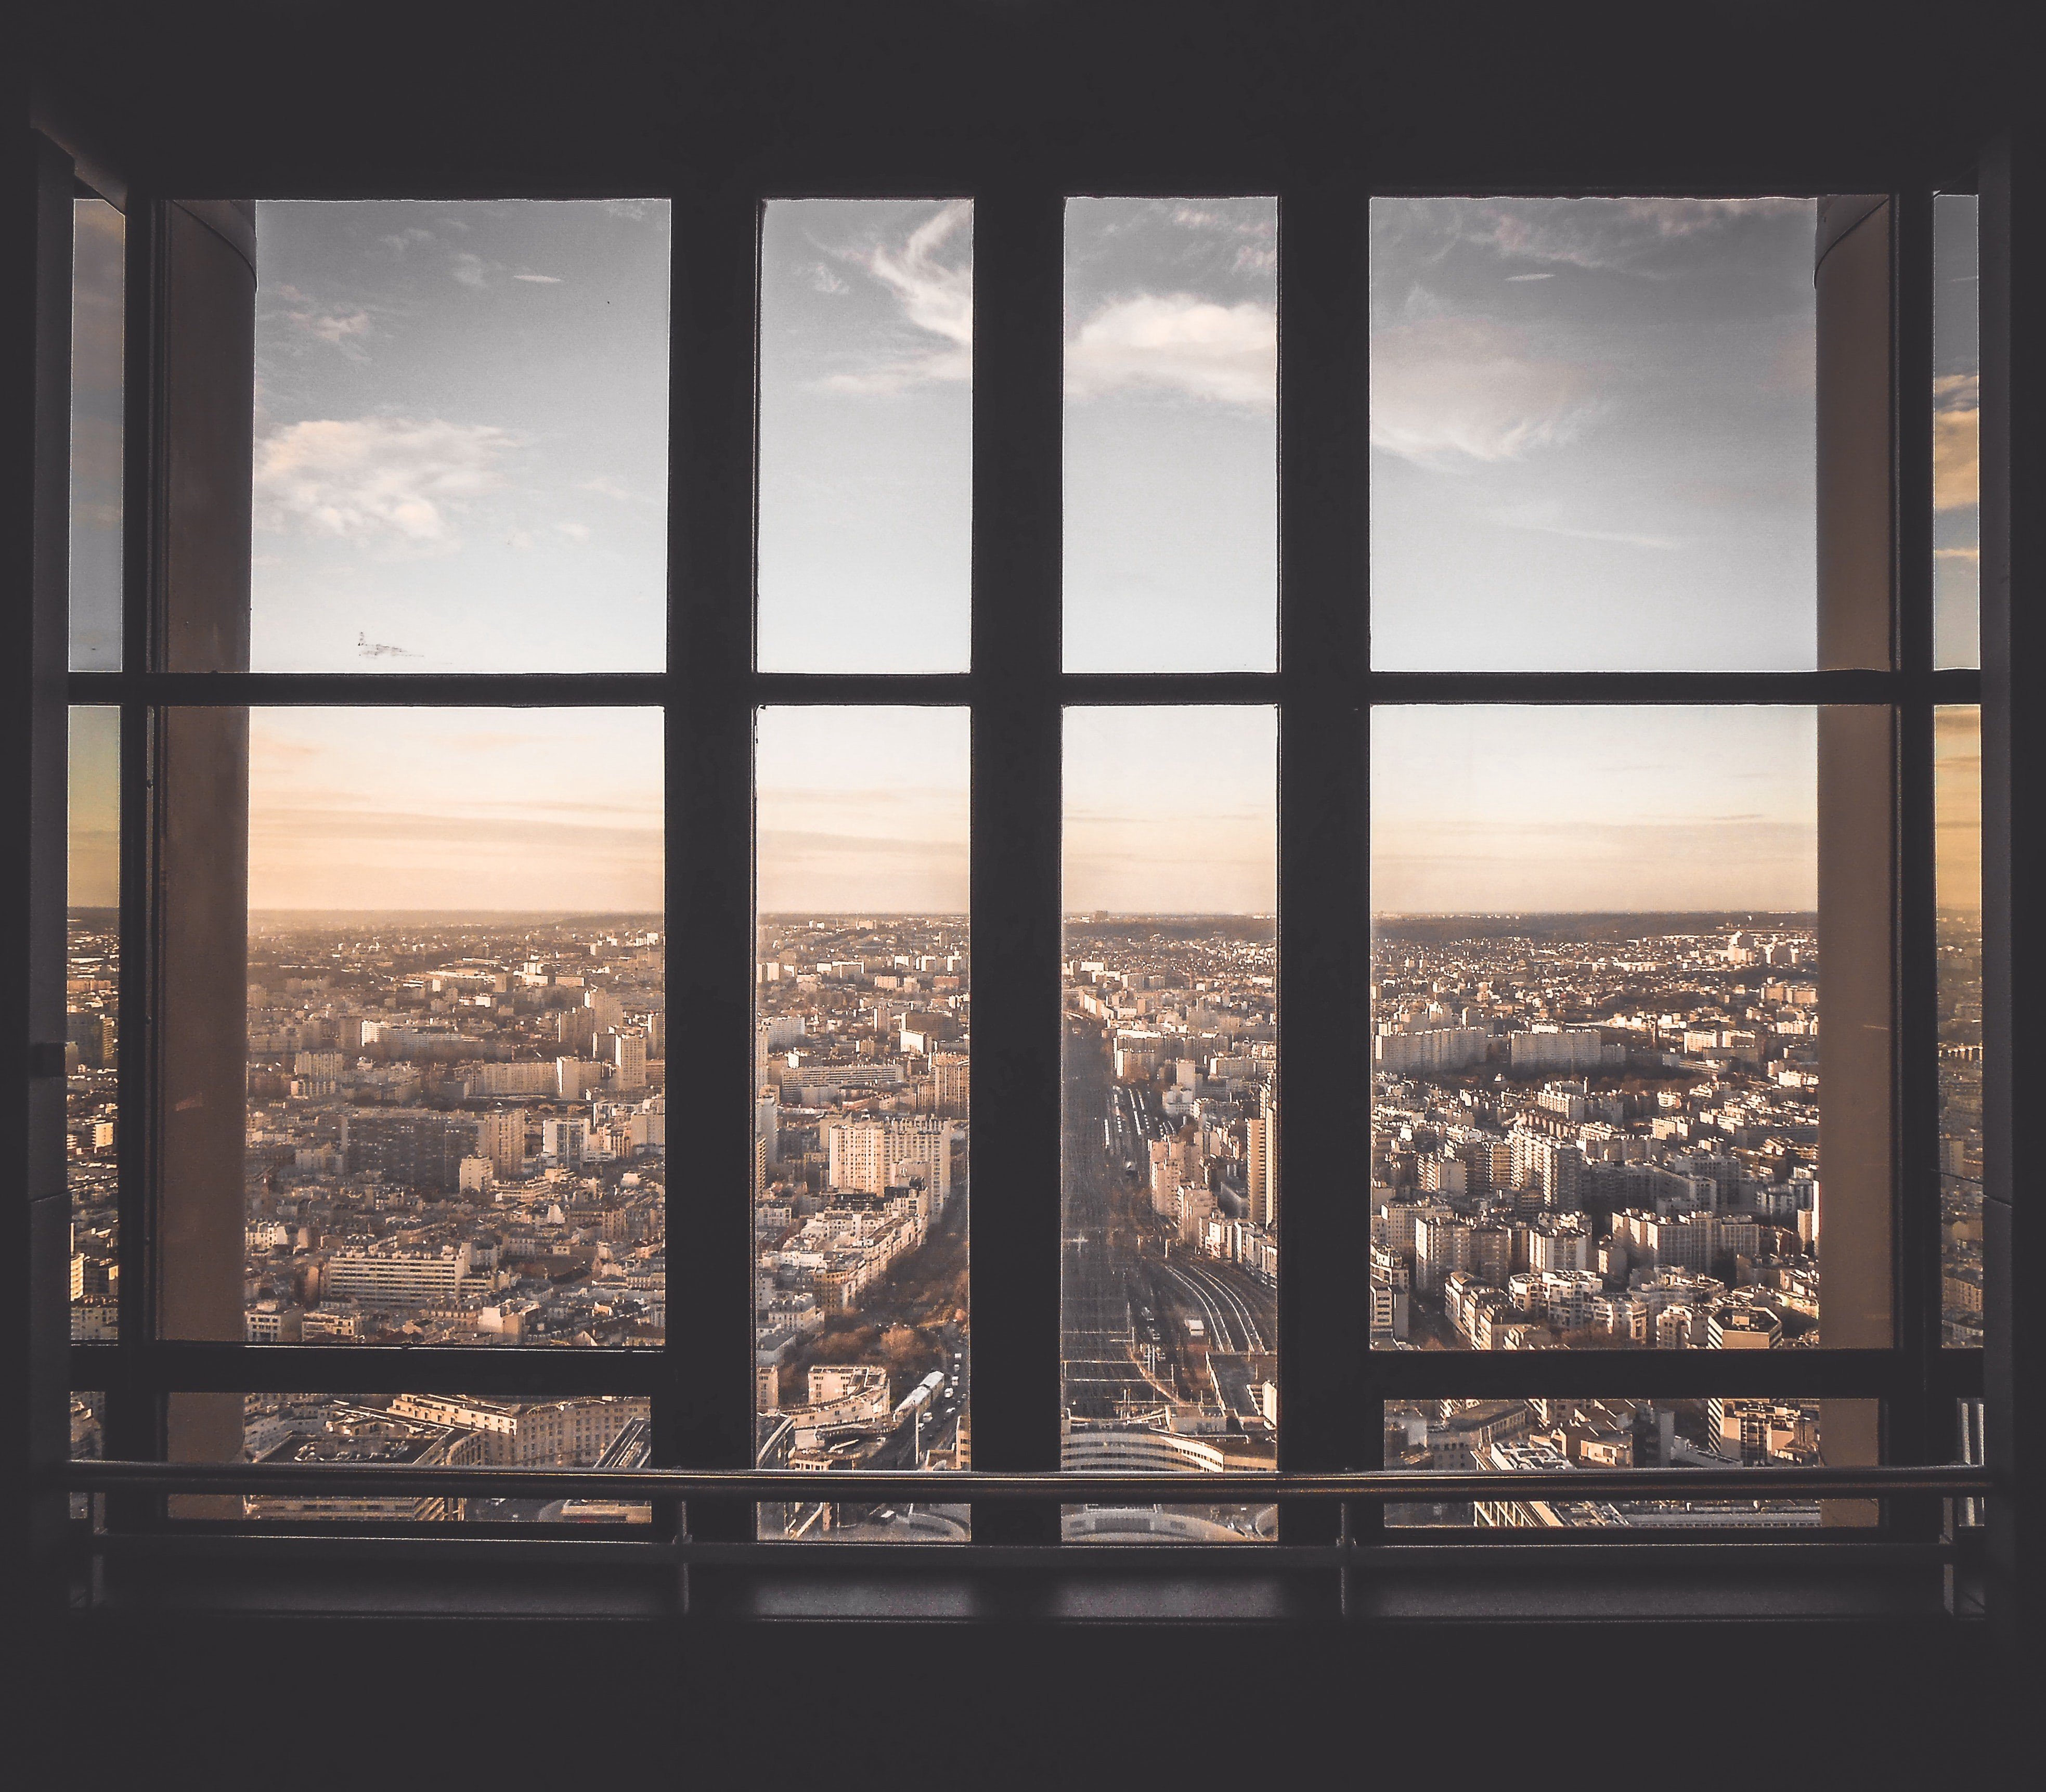 A window looking out over a city, slid partway open